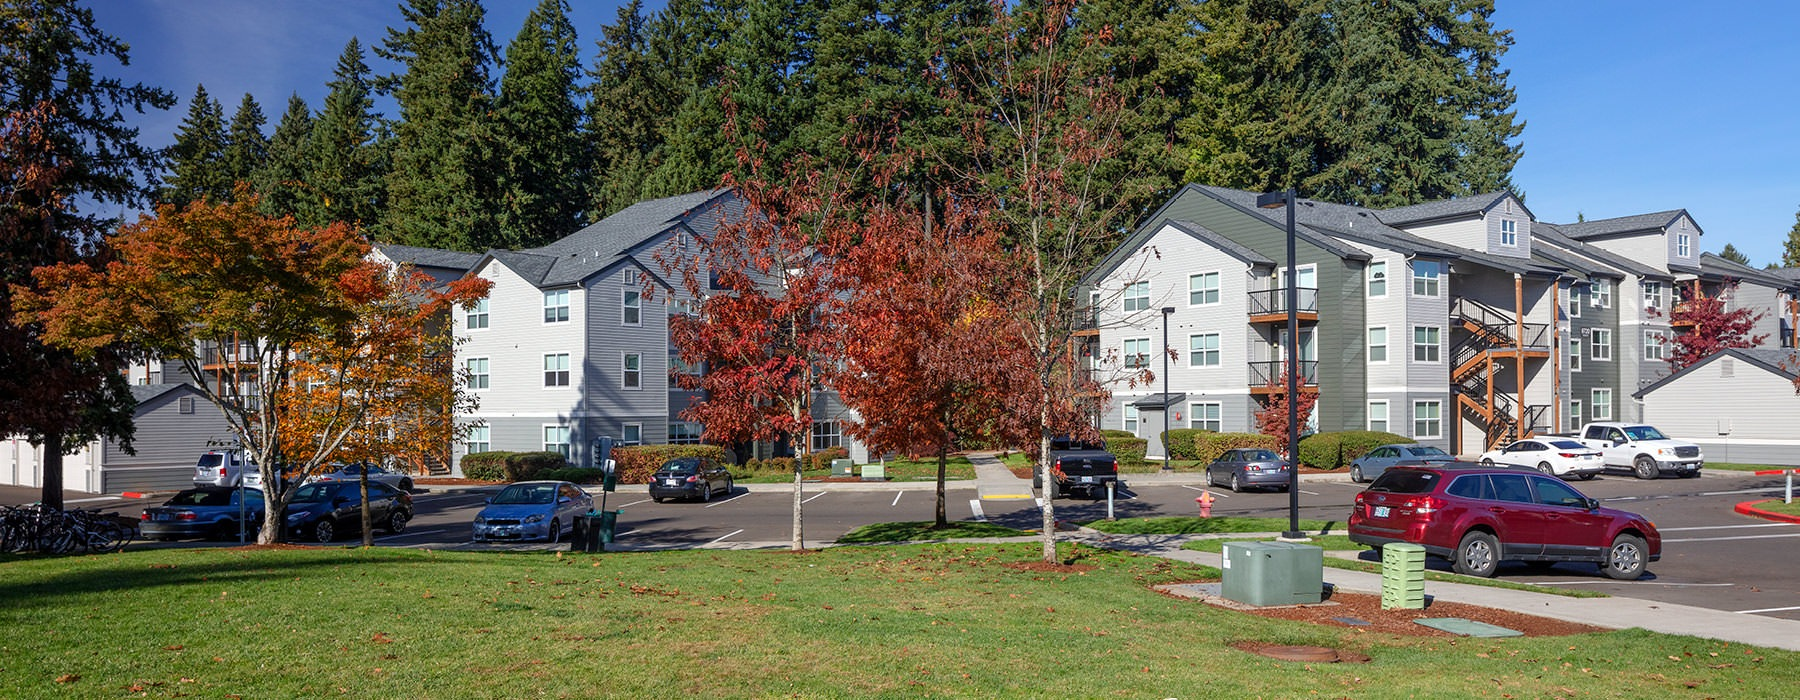 Jory Trail apartments and parking lot surrounded by trees